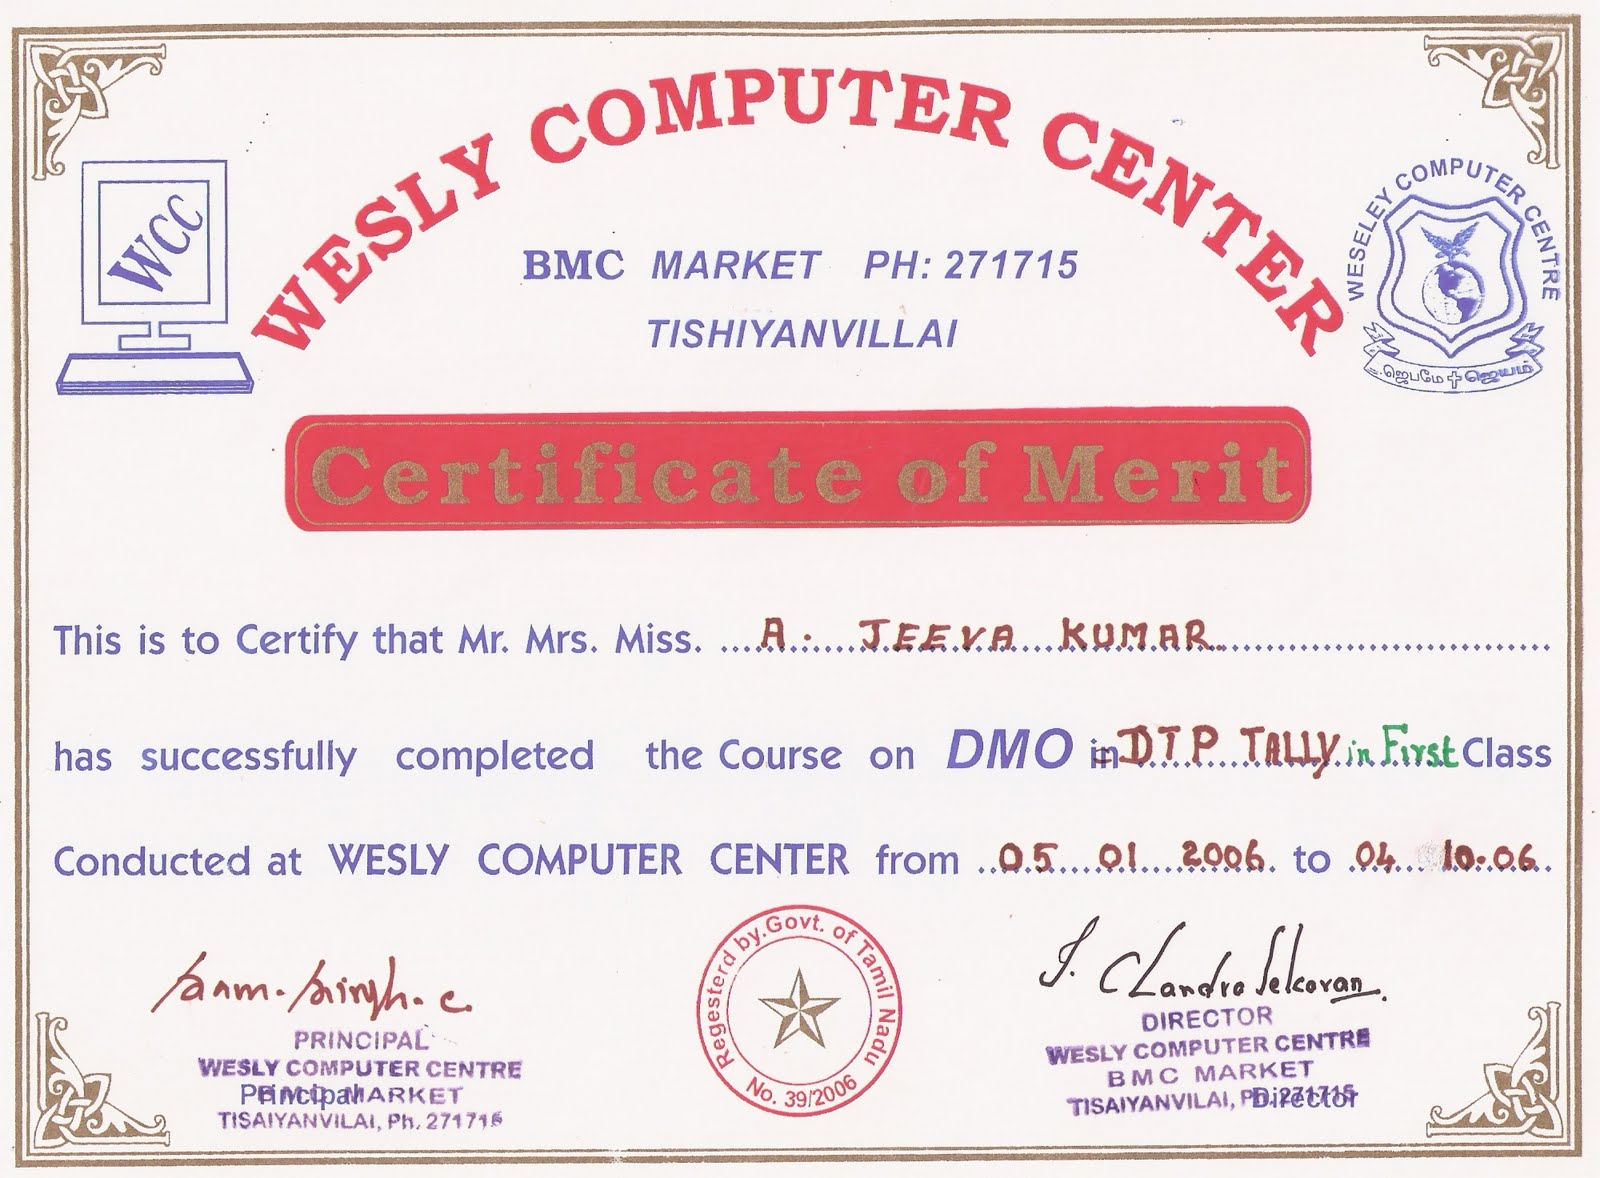 Certificate format for computer training images certificate certificate format for computer training images certificate certificate format for computer training image collections certificate format yadclub Image collections